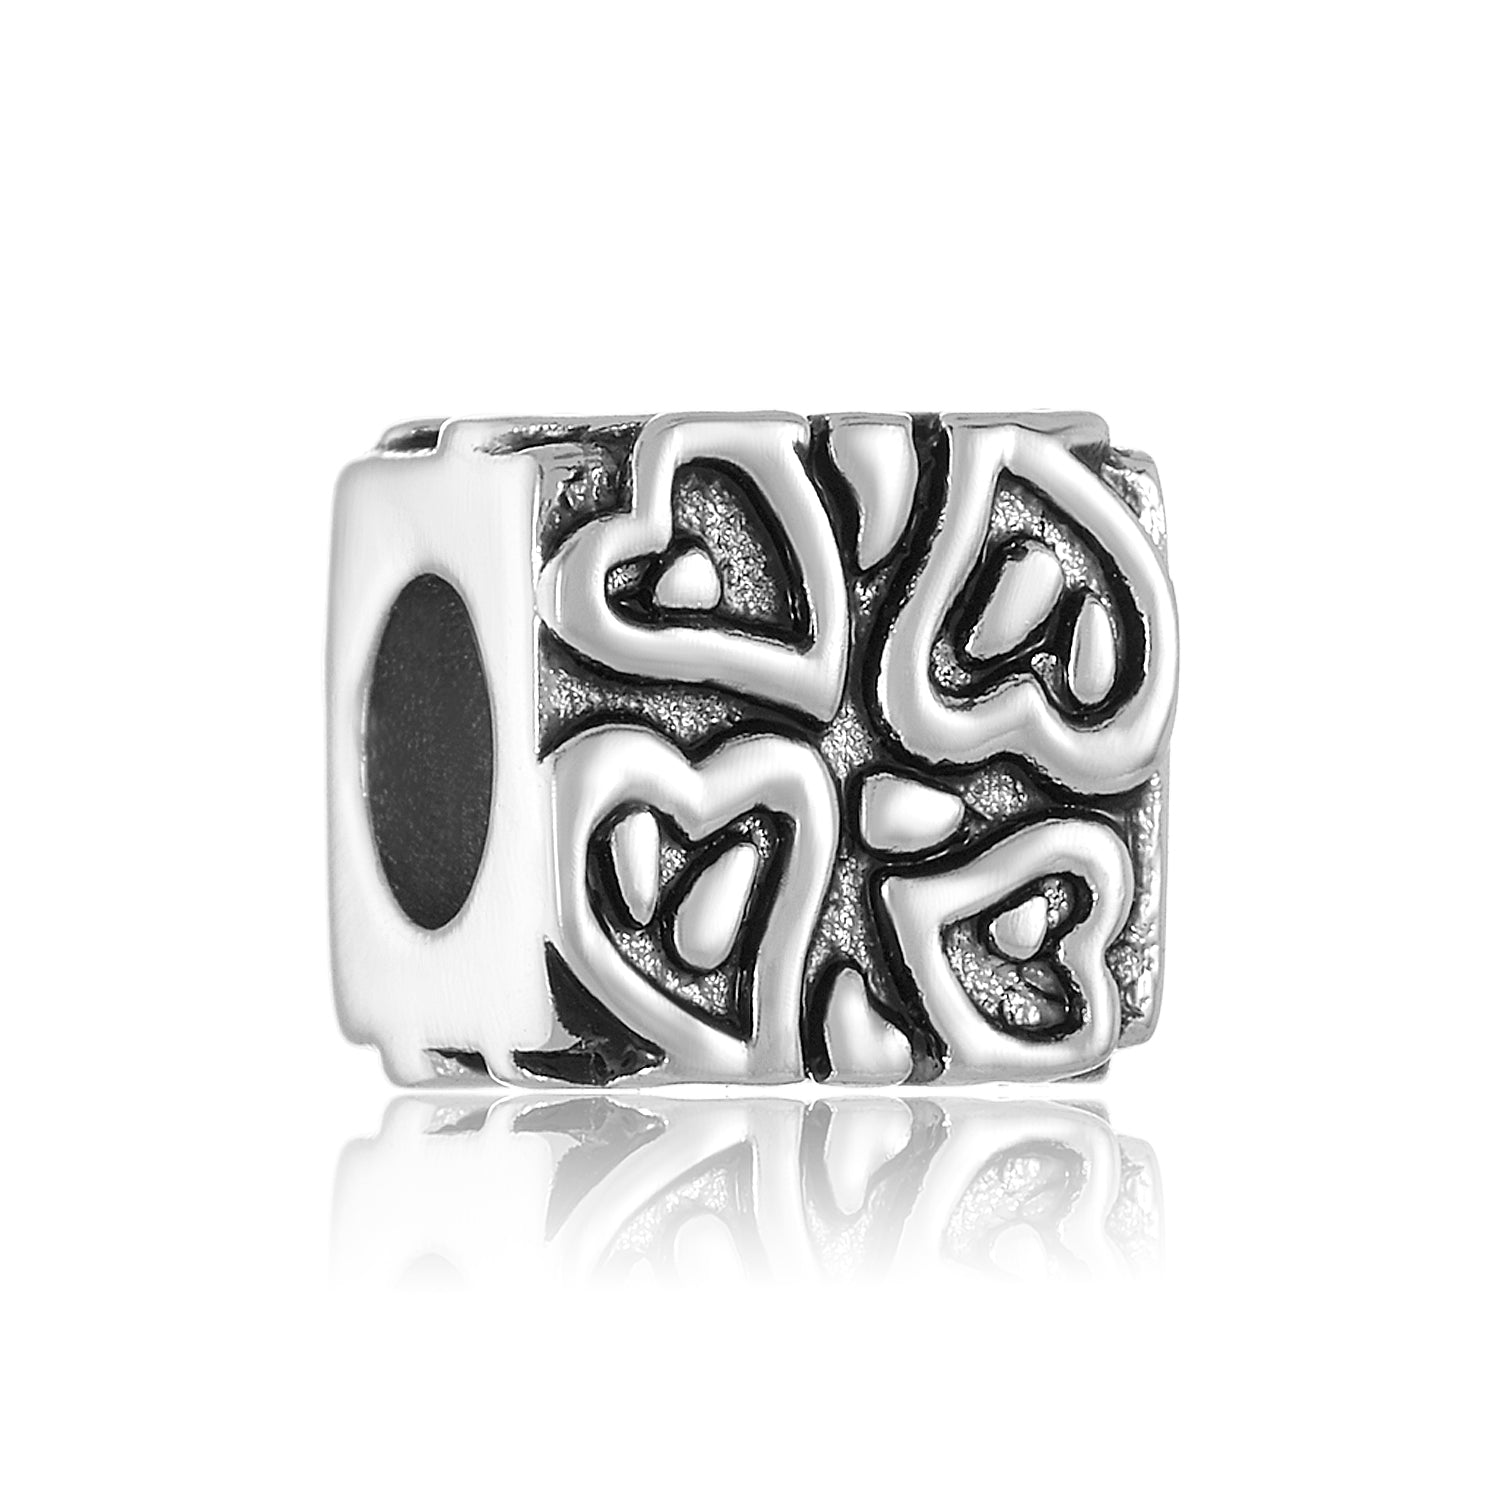 Silver square shaped bead with heart design